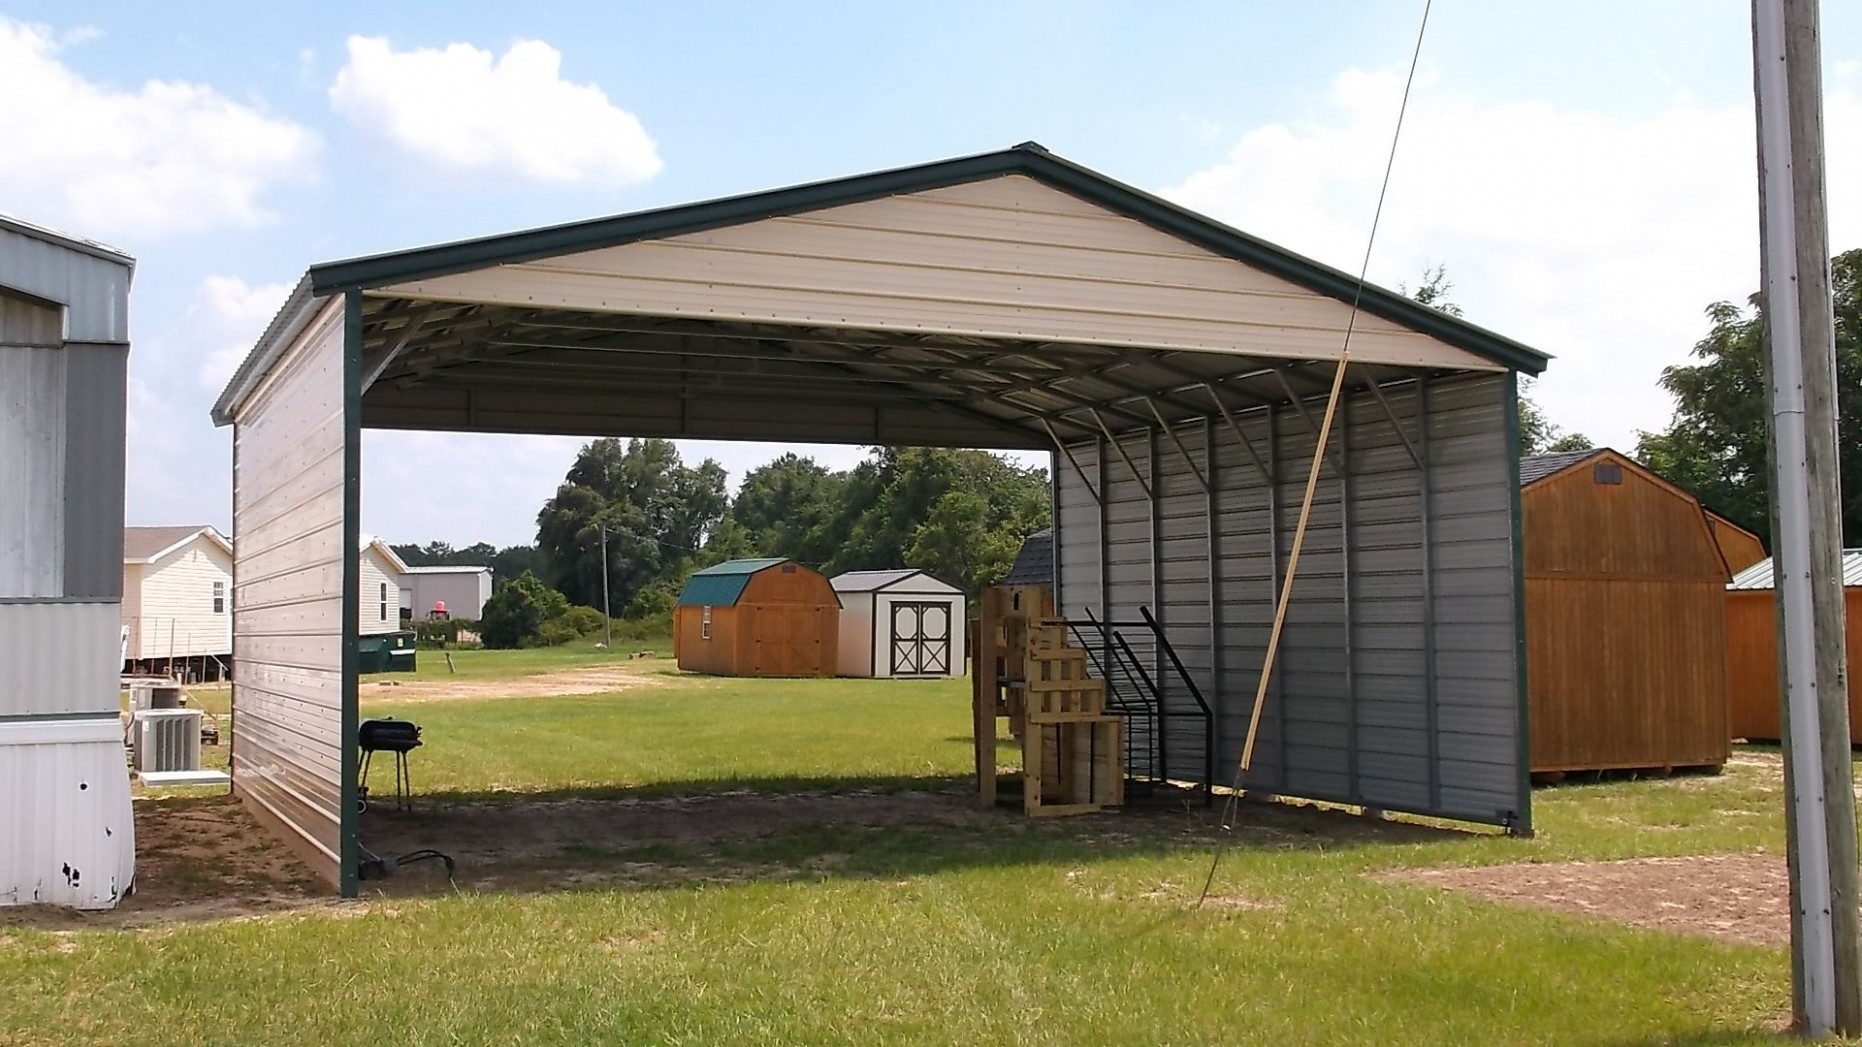 9 Things To Expect When Attending Carport Awning | carport awning